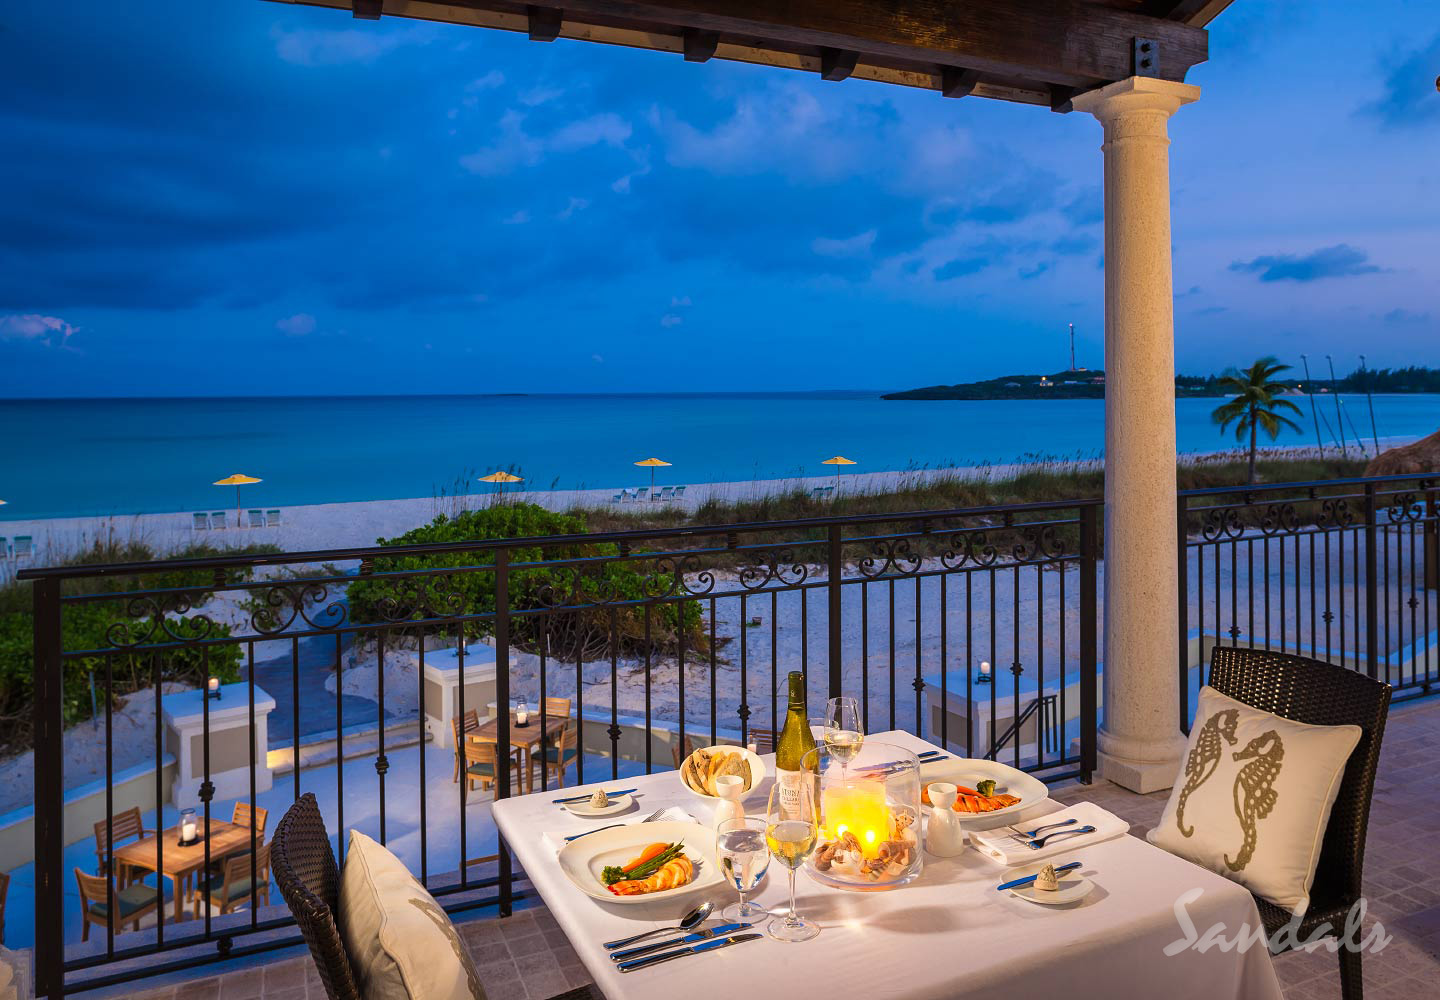 Travel Agency All-Inclusive Resort Sandals Emerald Bay 042